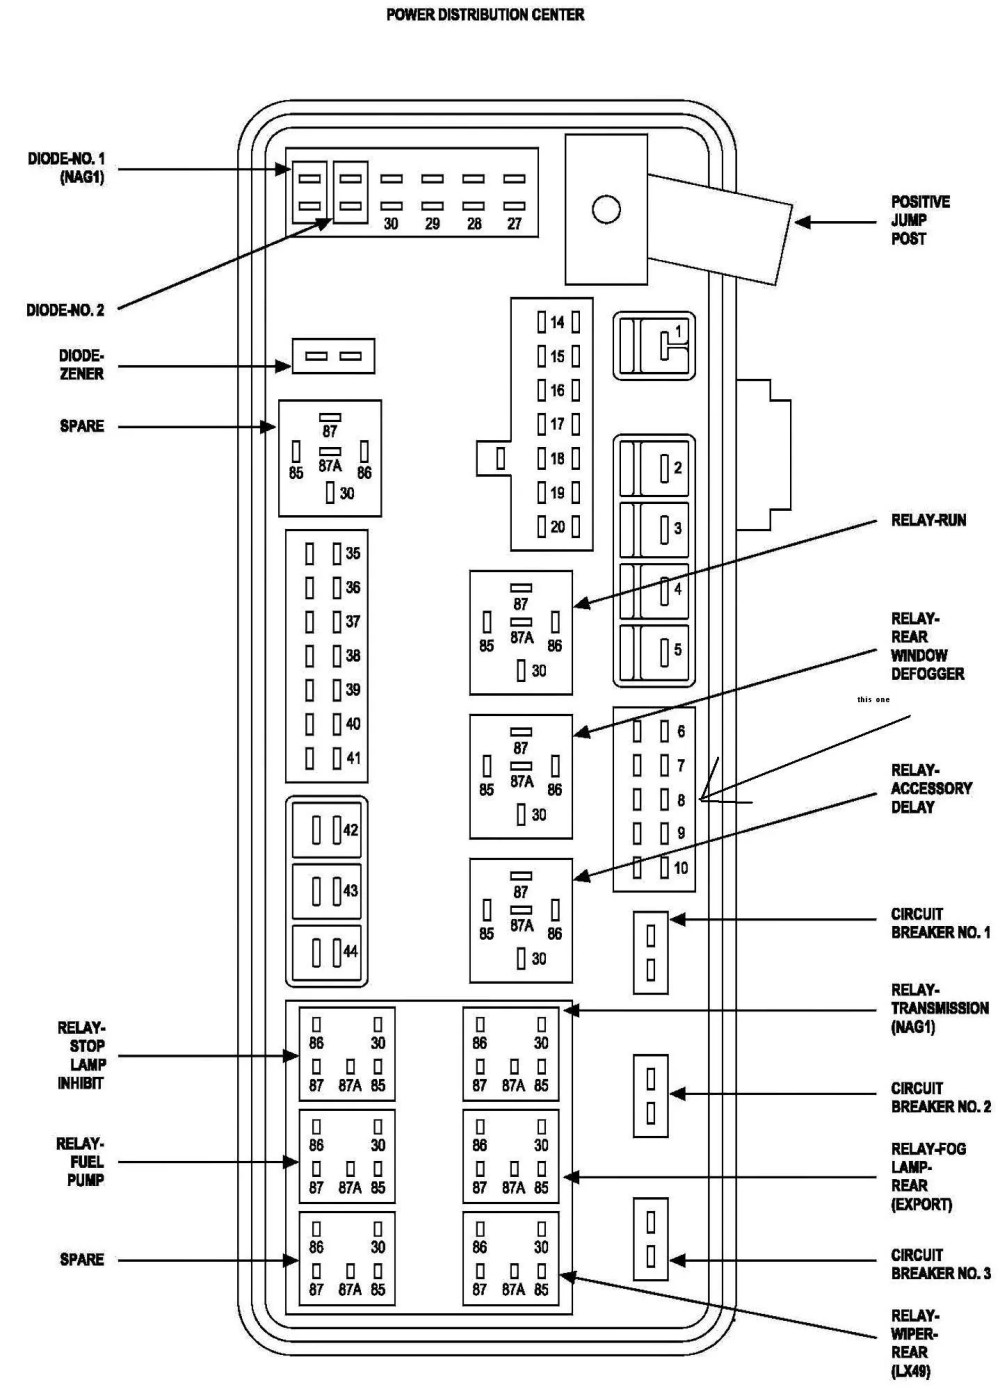 medium resolution of dodge fuse diagram wiring diagram expert dodge charger fuse diagram dodge fuse box diagram wiring diagram